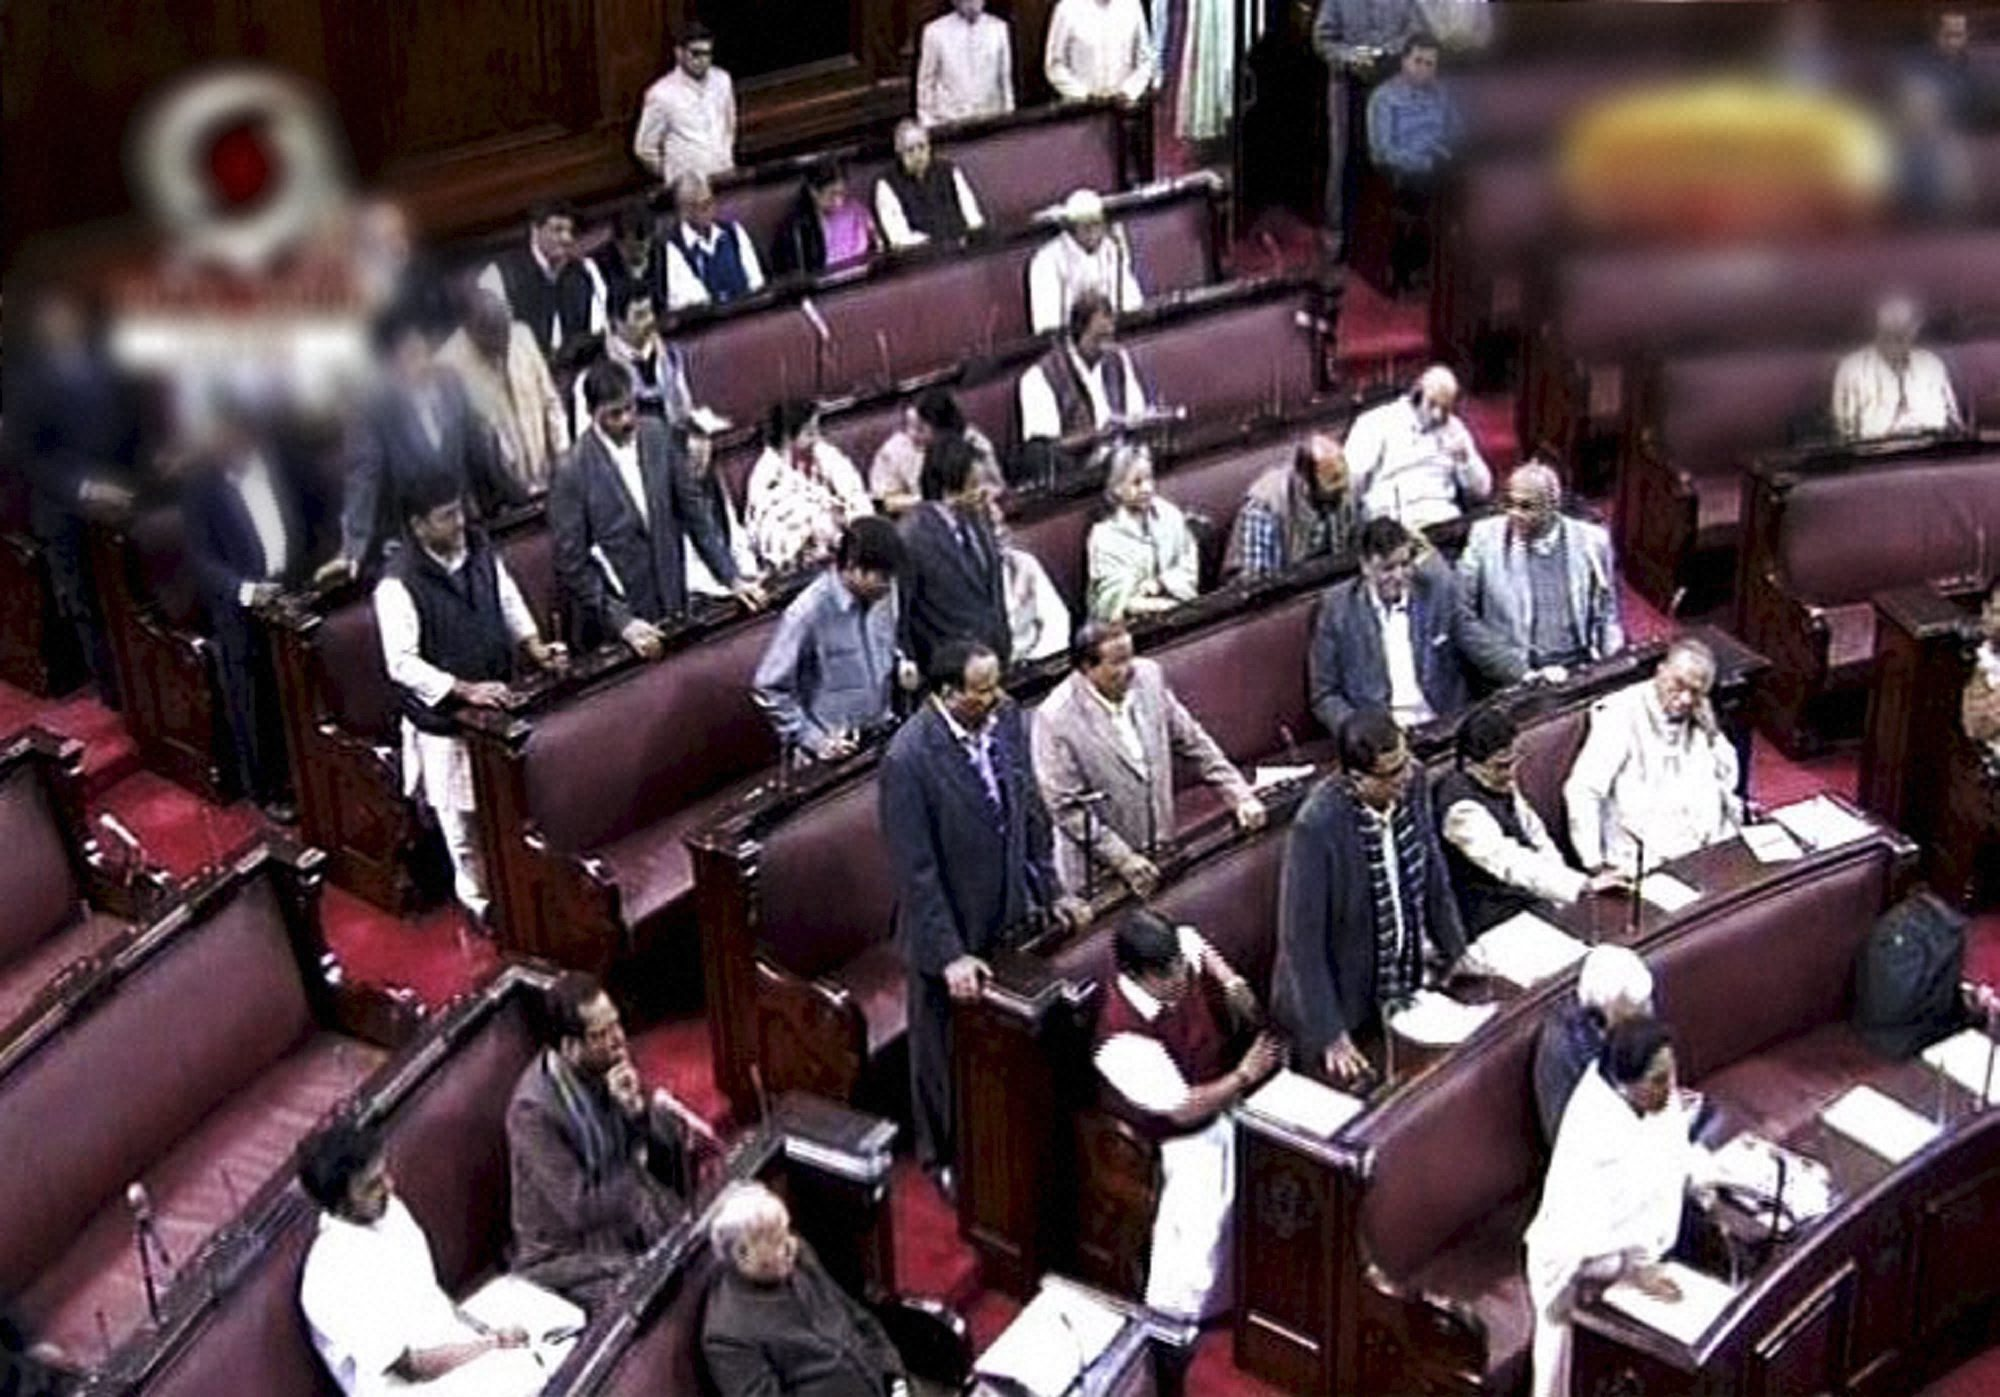 Rajya Sabha again adjourned over UPSC row